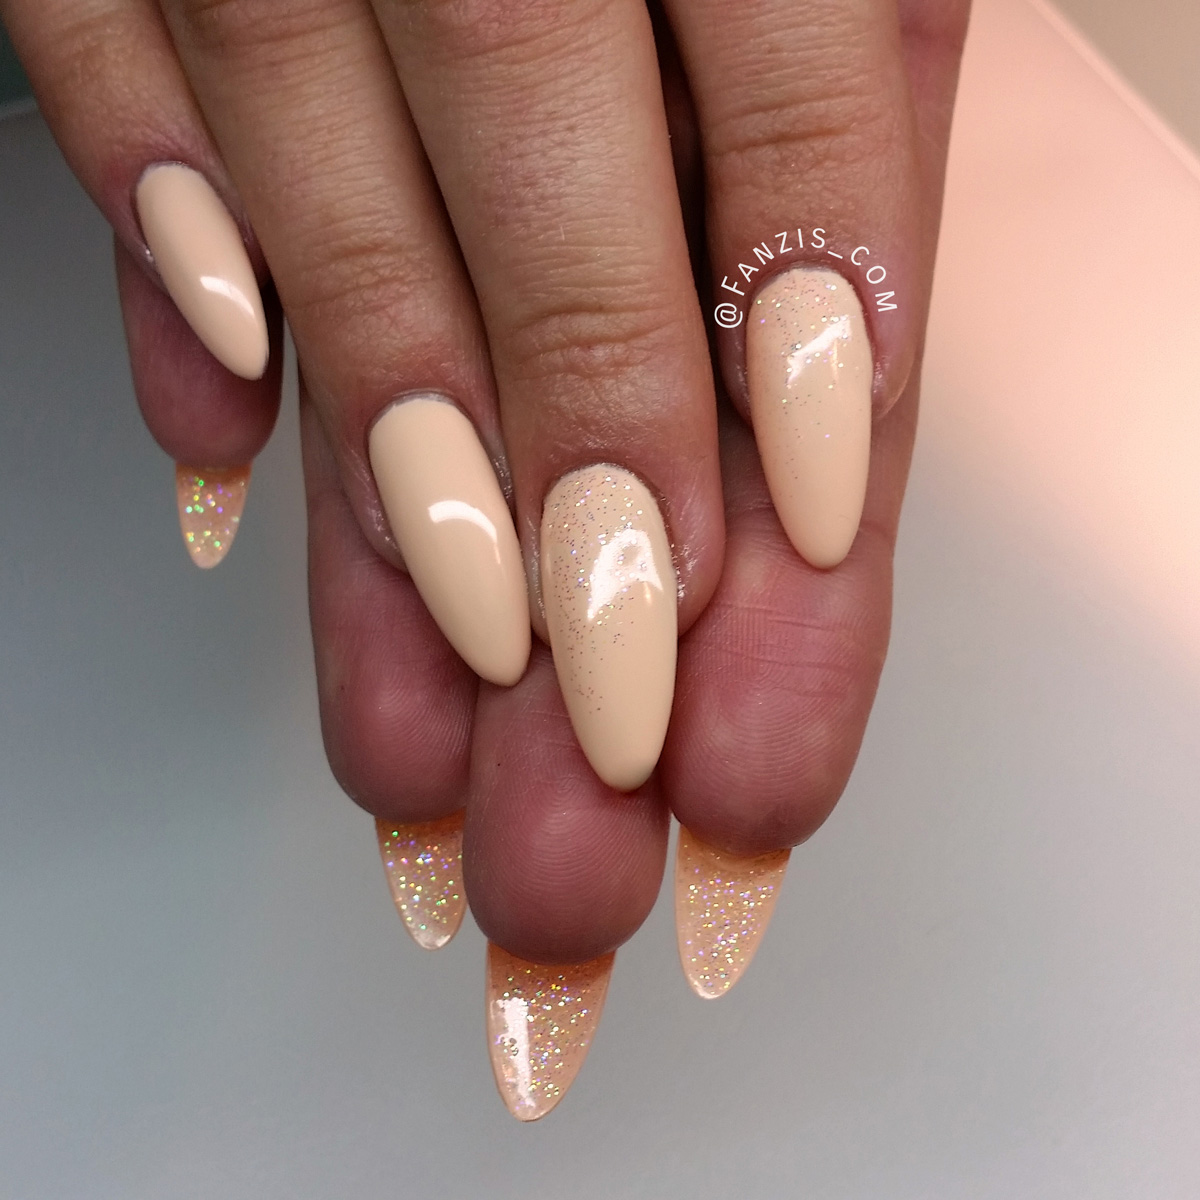 Nail Art Tutorial: Nude and Glitter Louboutin Nails